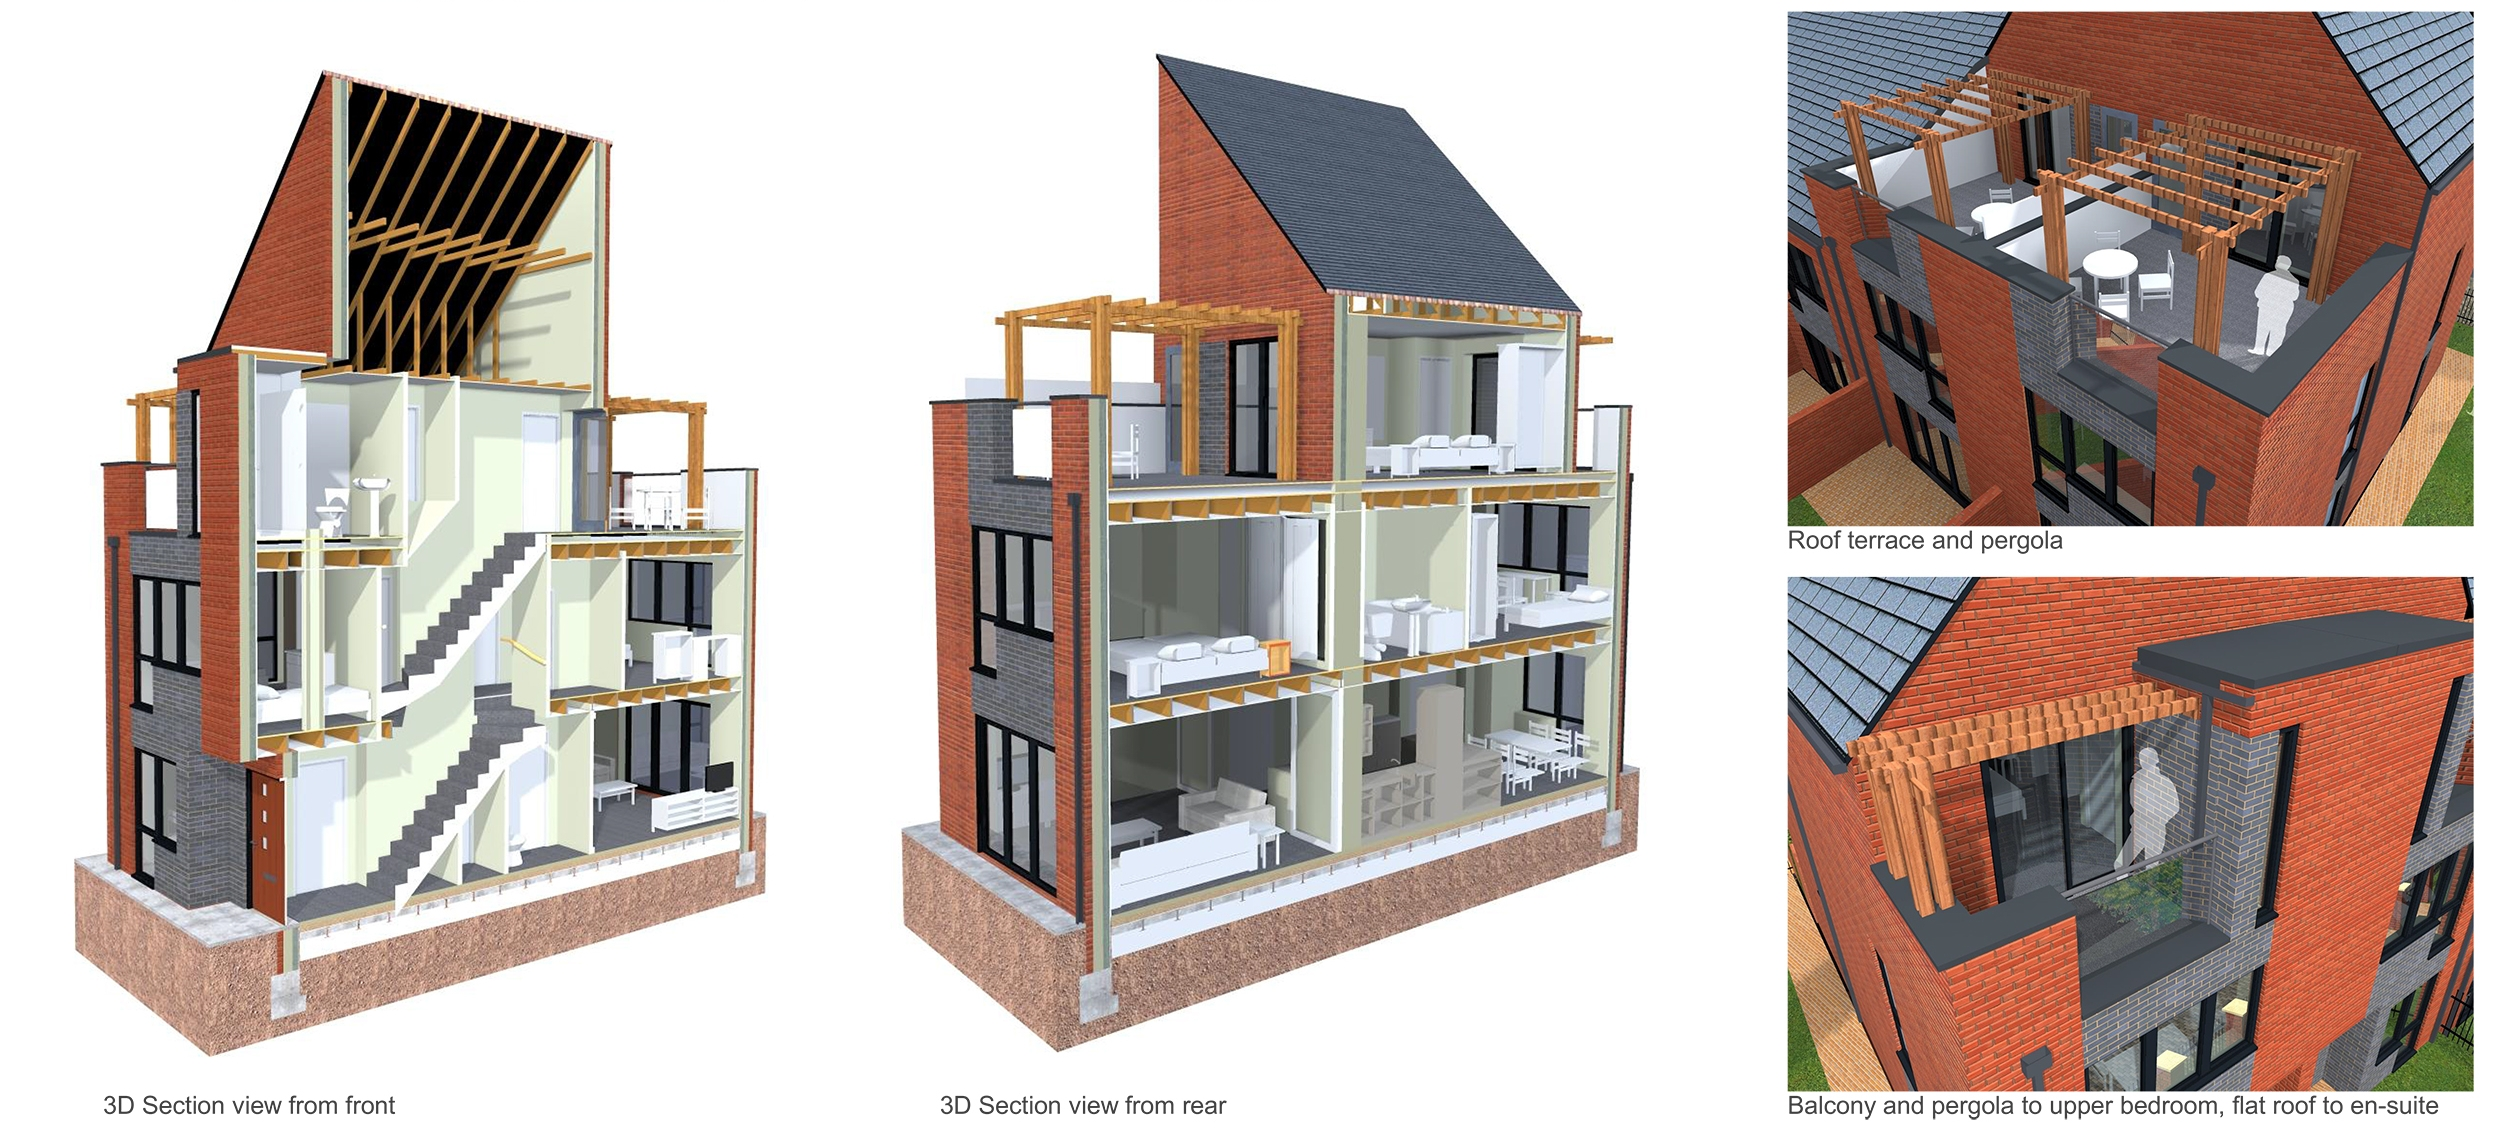 1427-P-05 Block A 3B6P House elevations, section views and features.jpg